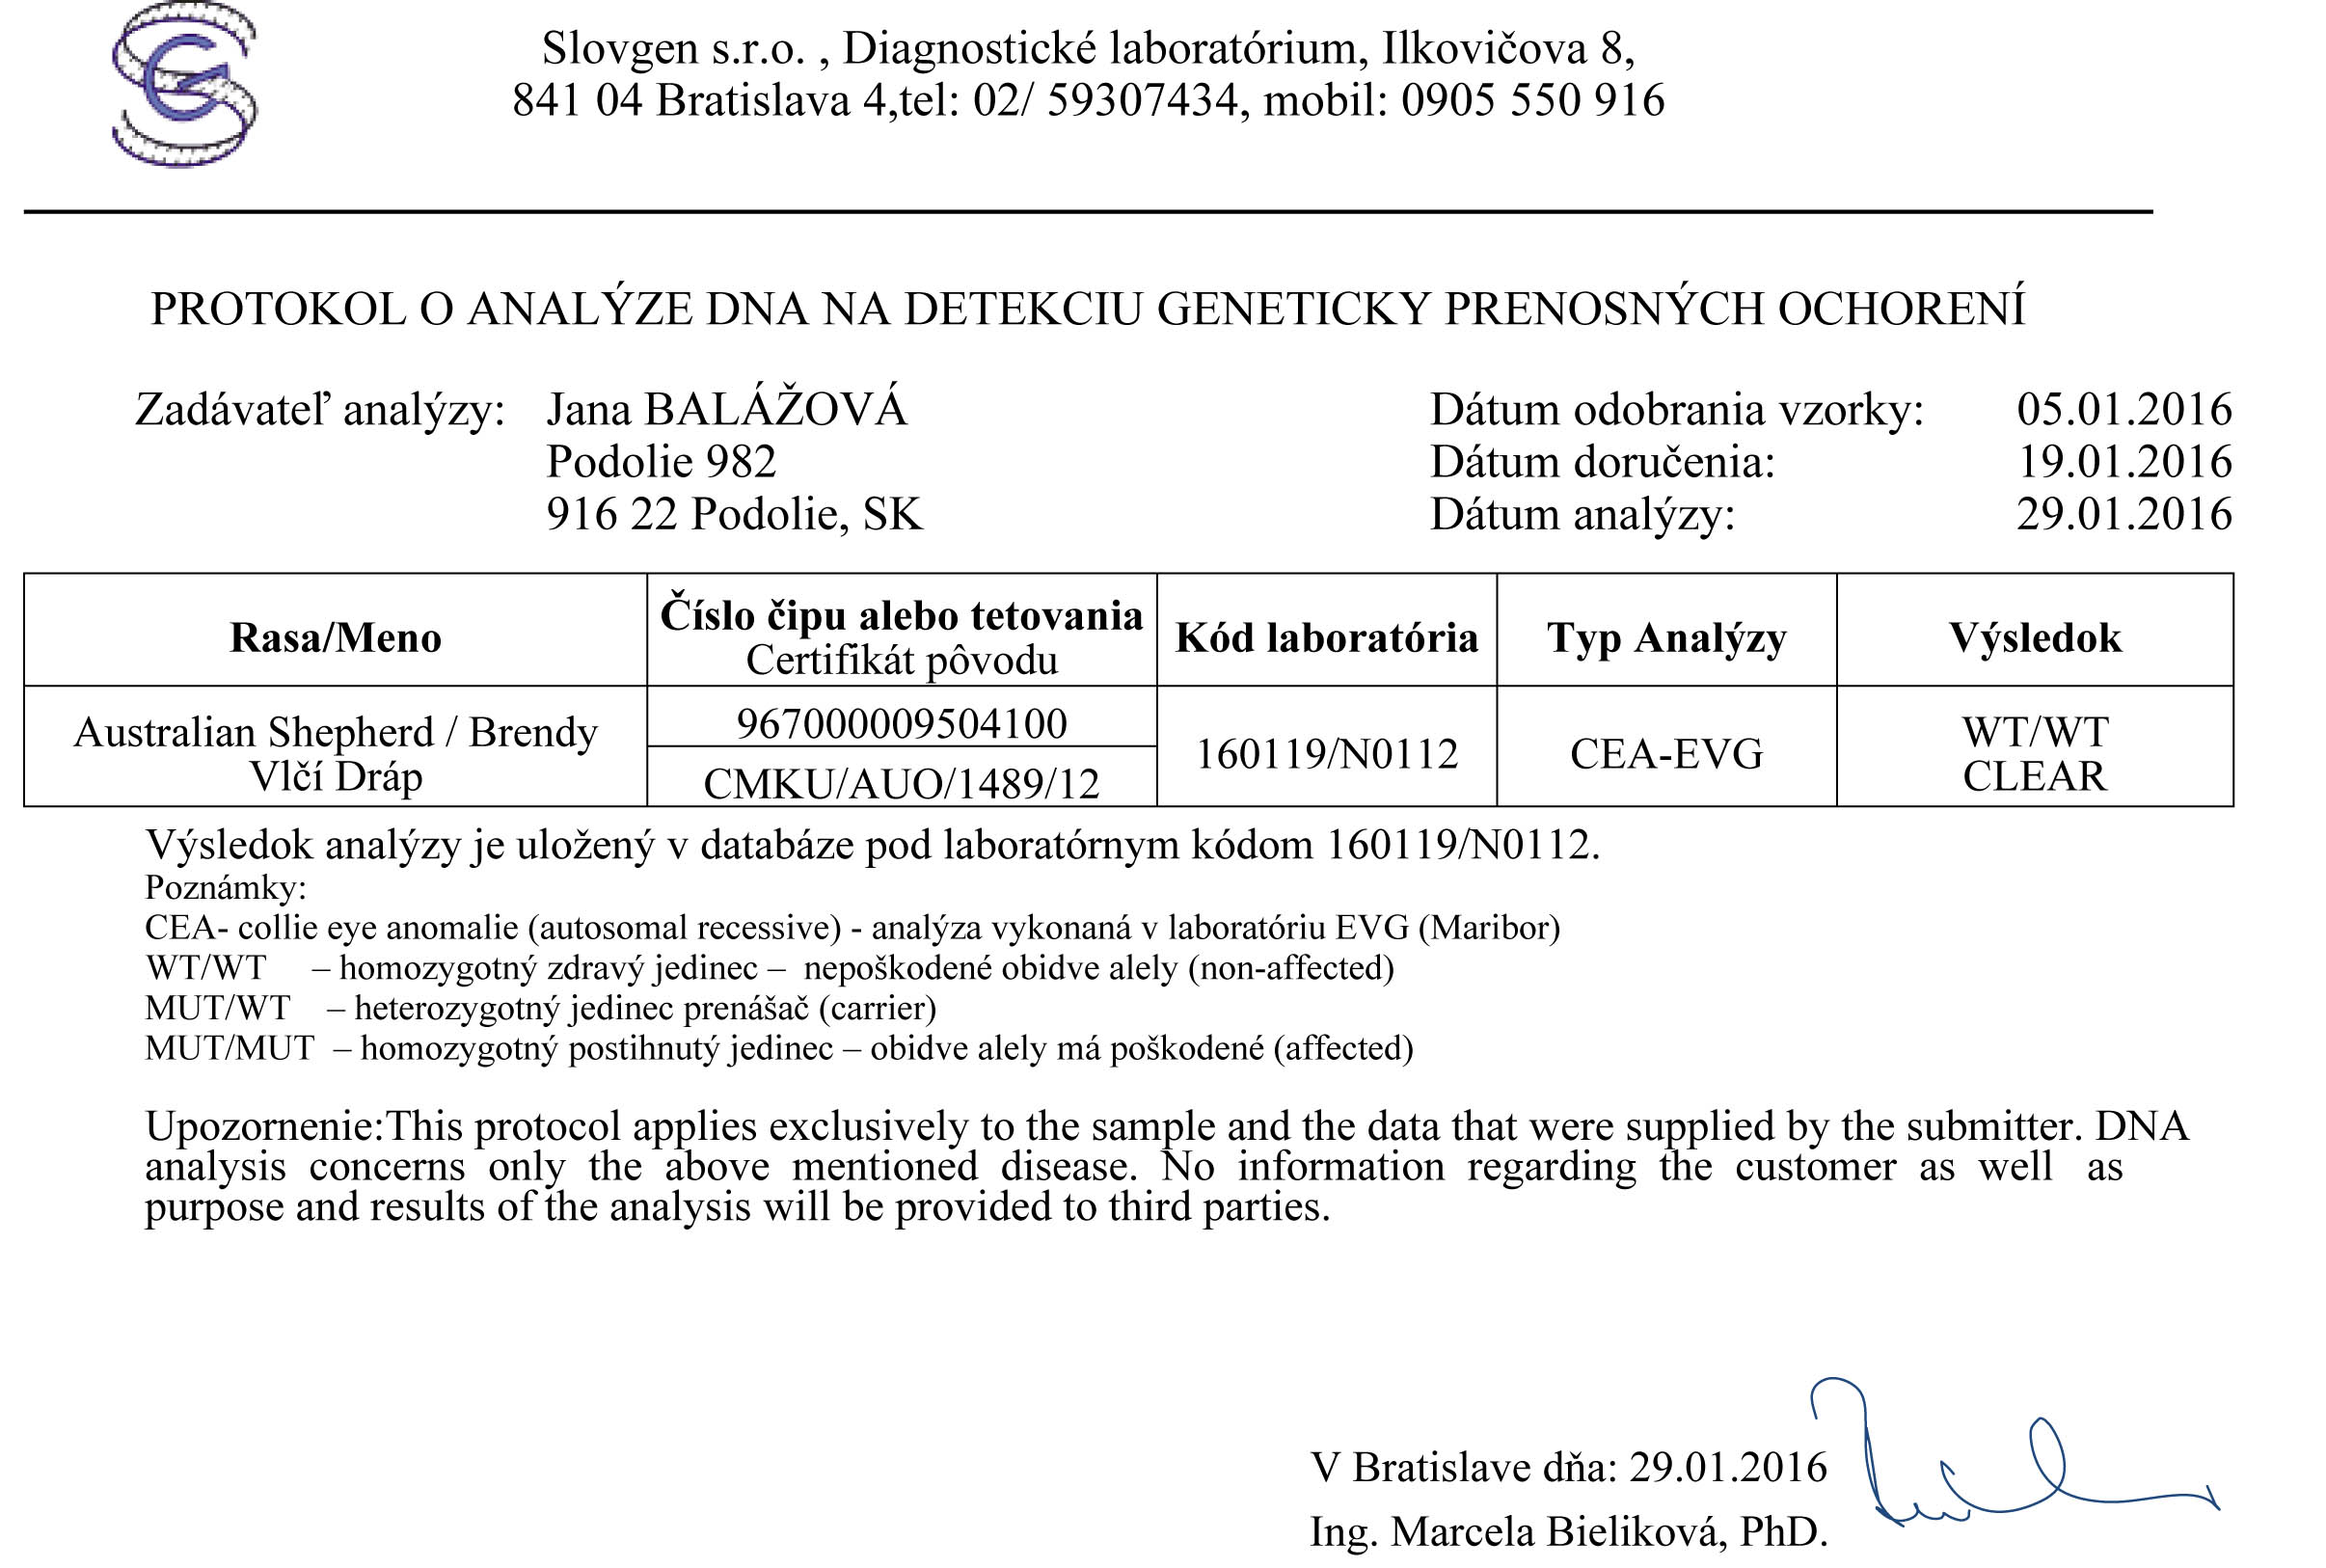 Results of DNA test for CEA